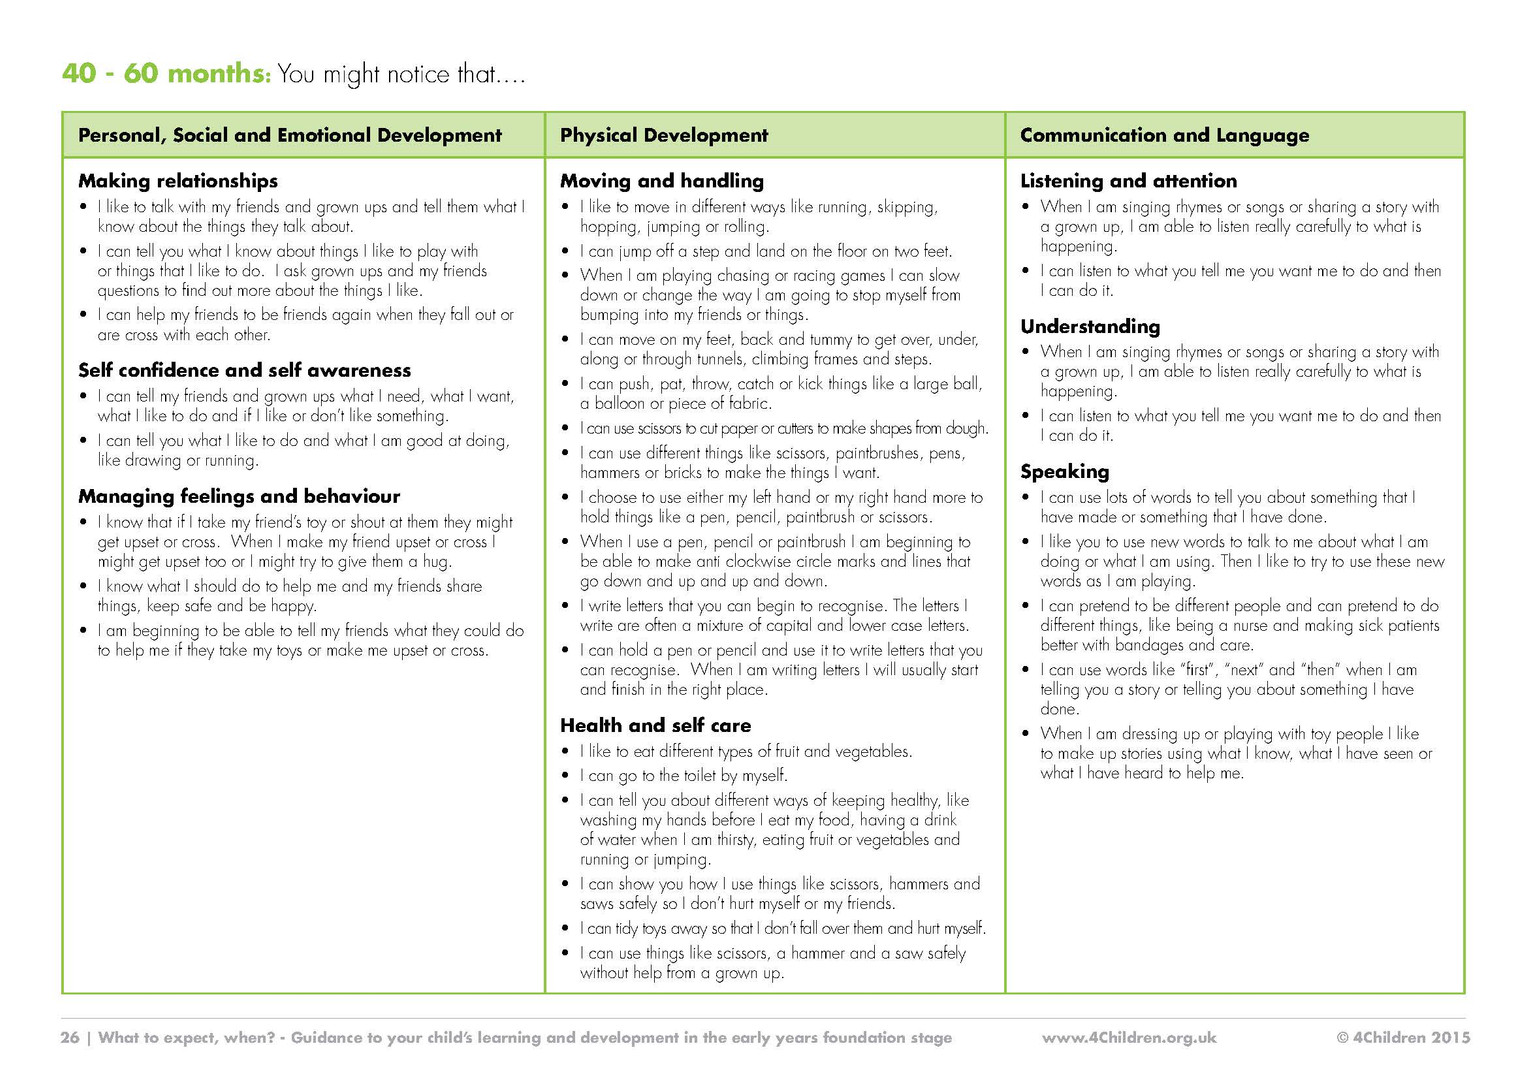 Parents Guide of EYFS_Page_26.jpg